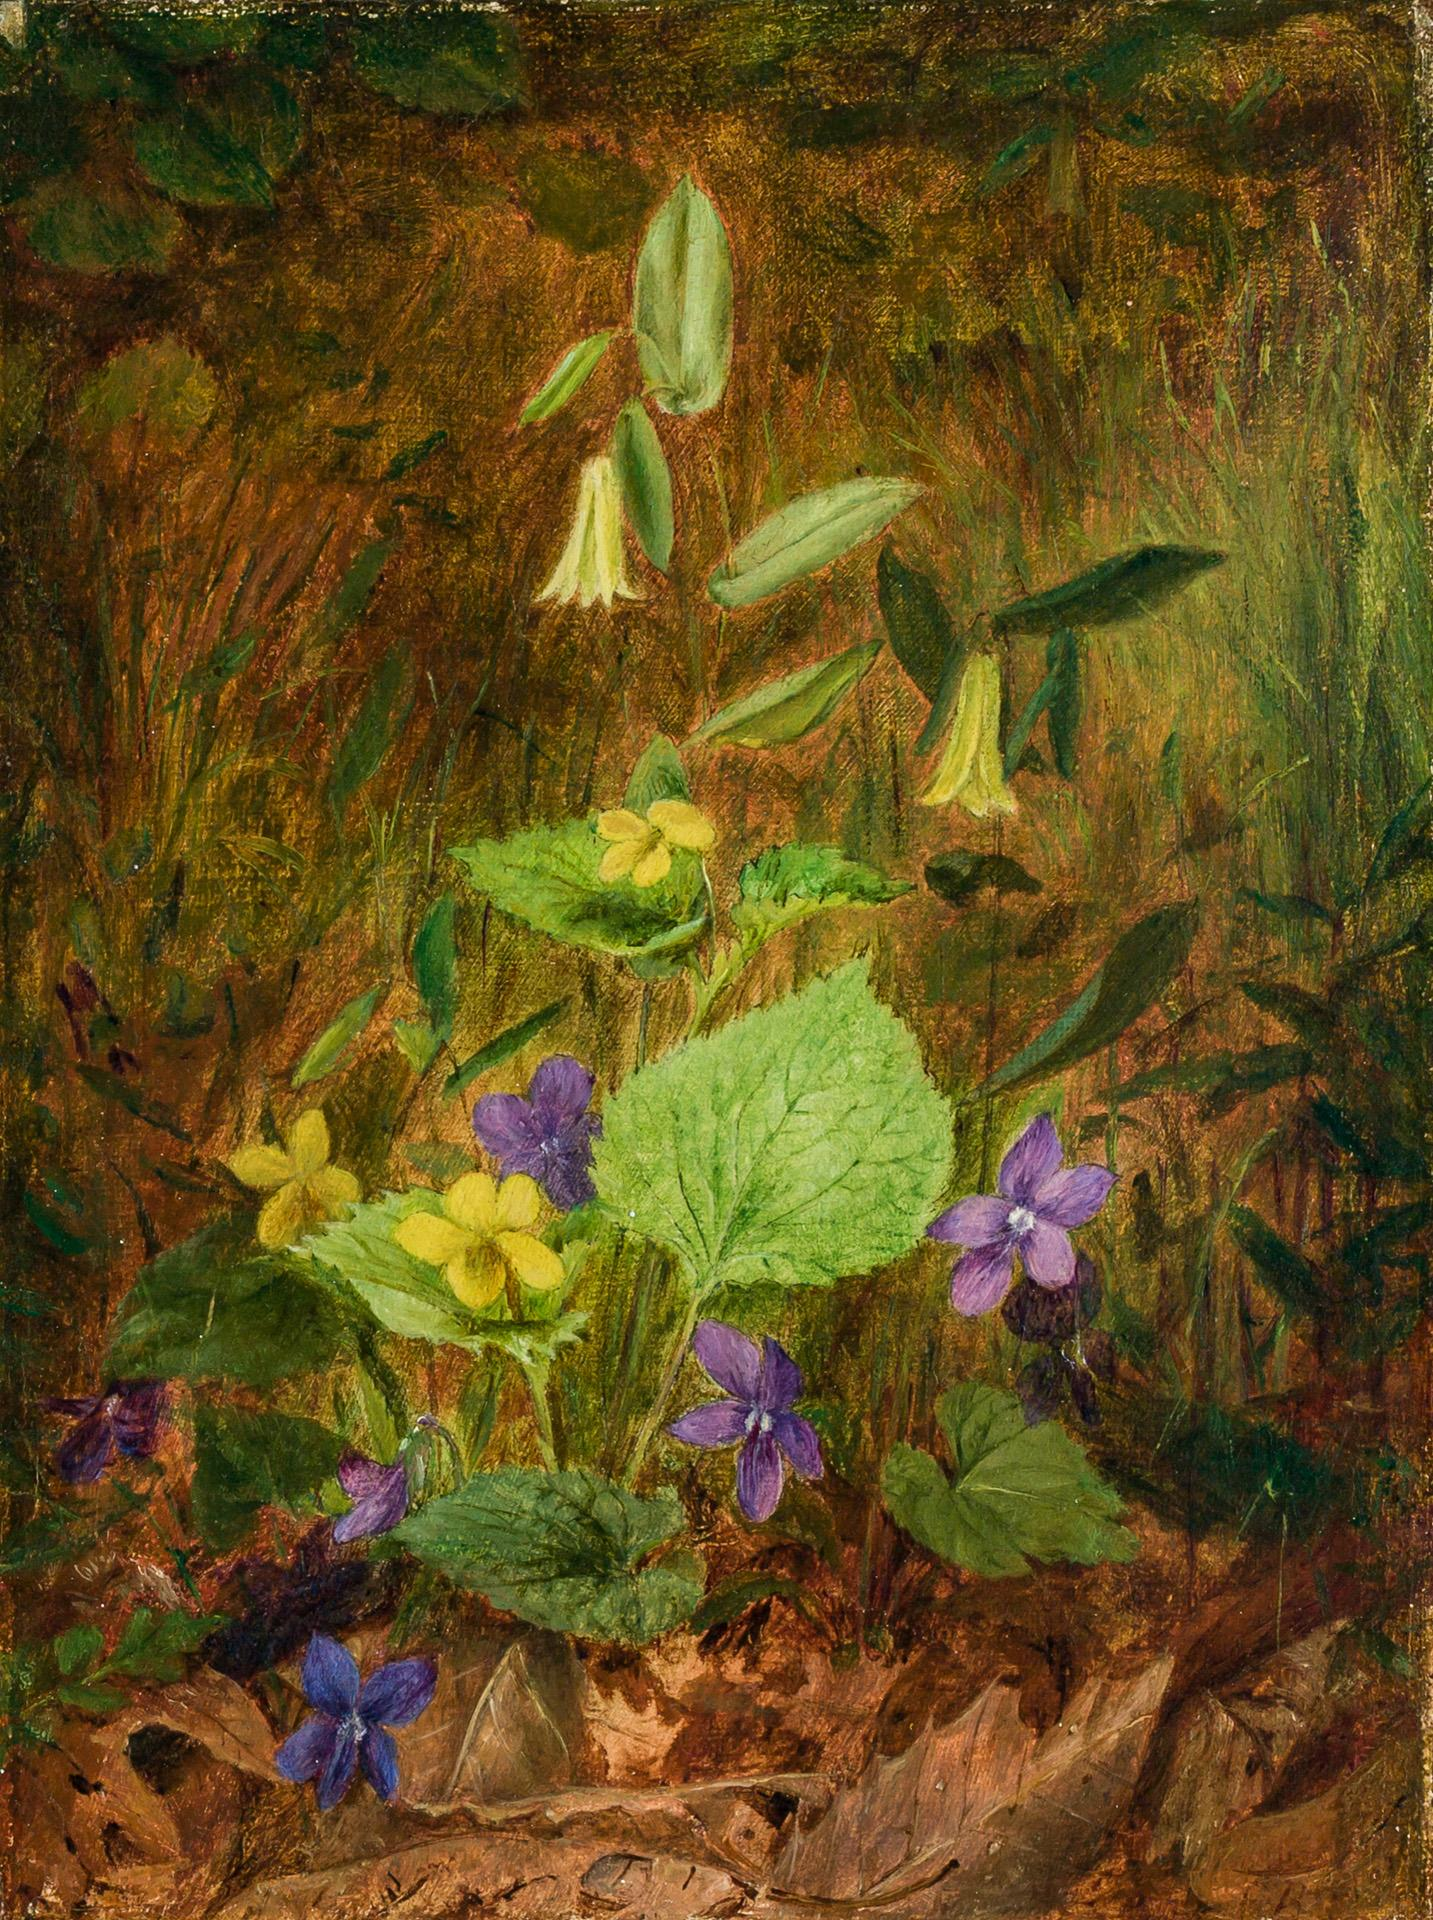 """FIDELIA BRIDGES, American (1834-1923), Myrtle and Lilies, oil on canvas, signed lower right """"F. Bridges"""", 8 1/2 x 6 1/2 inches"""